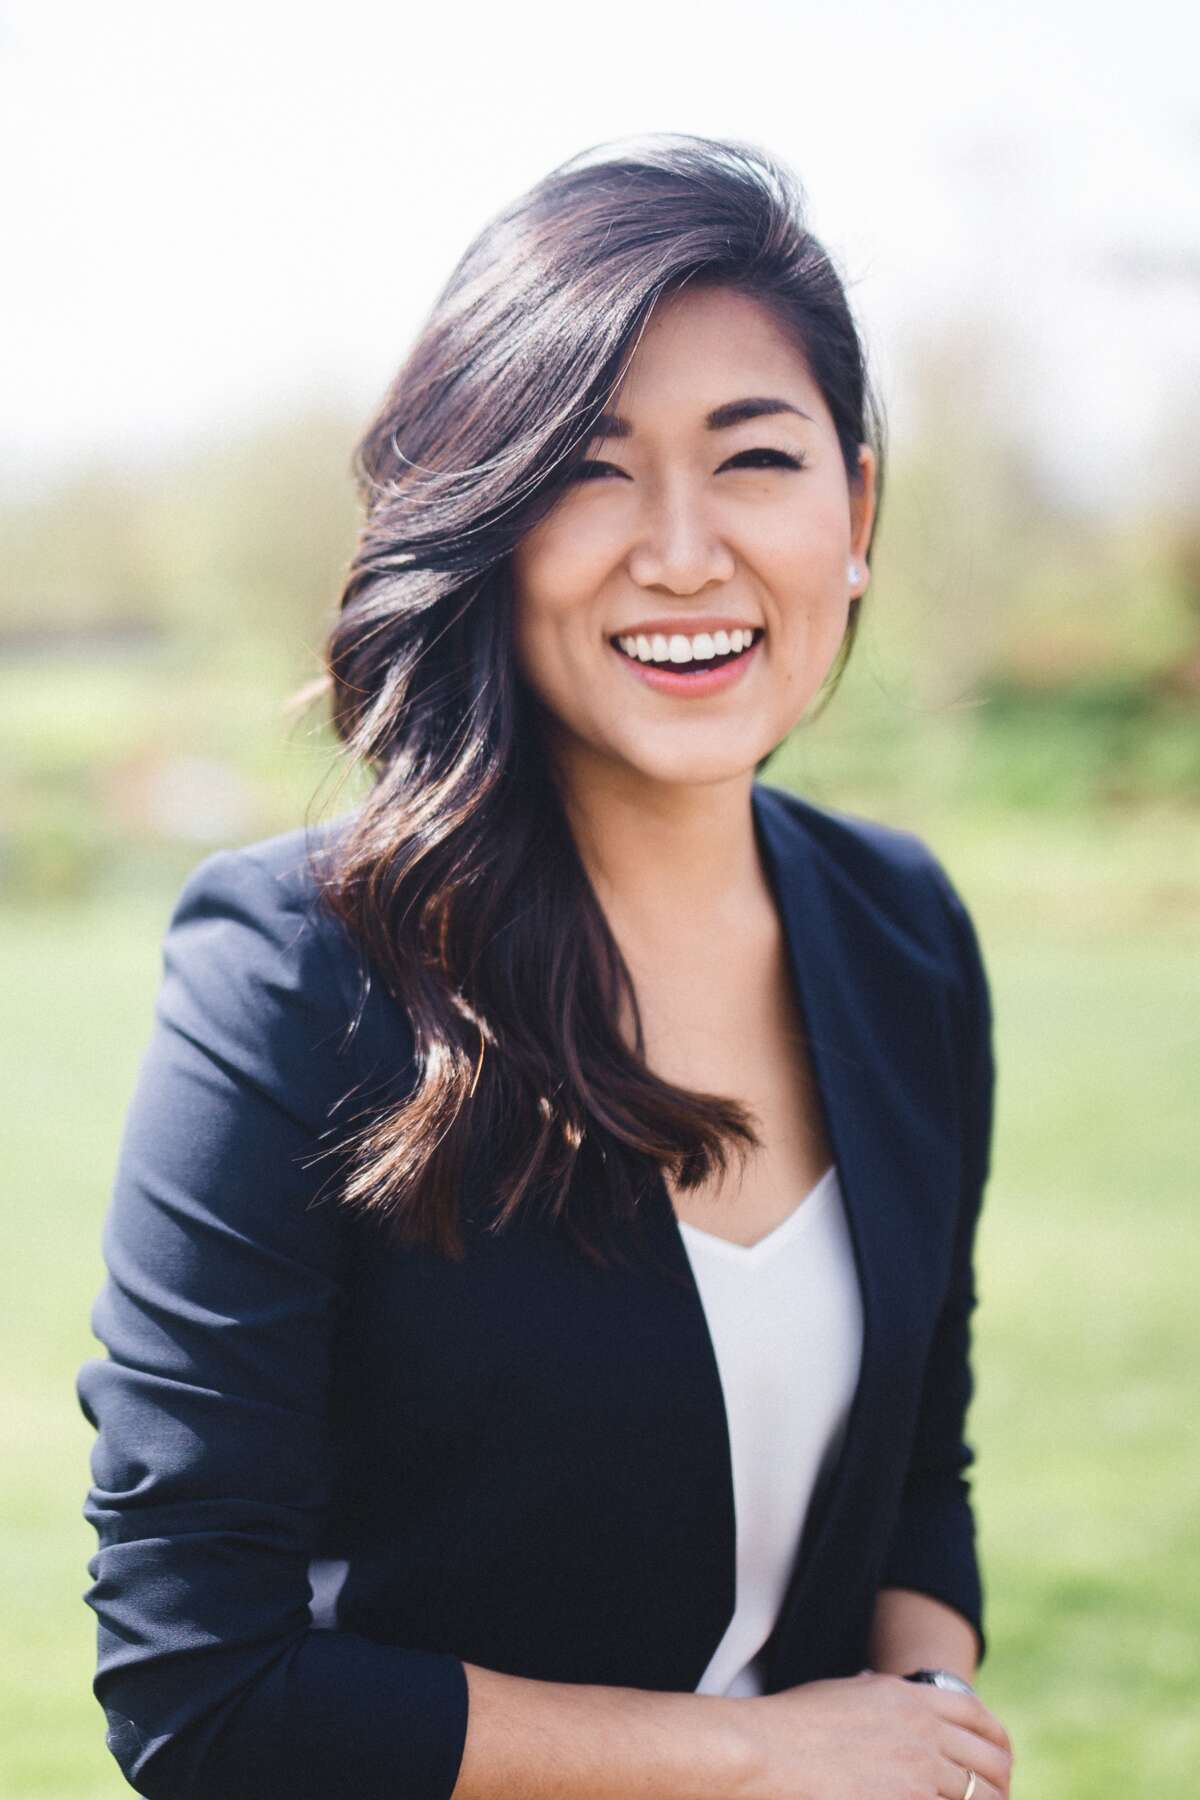 Jinyoung Lee Englund, Republicans' hope to hold pivotal State Senate seat in the 45th District. She has some catching up to do.